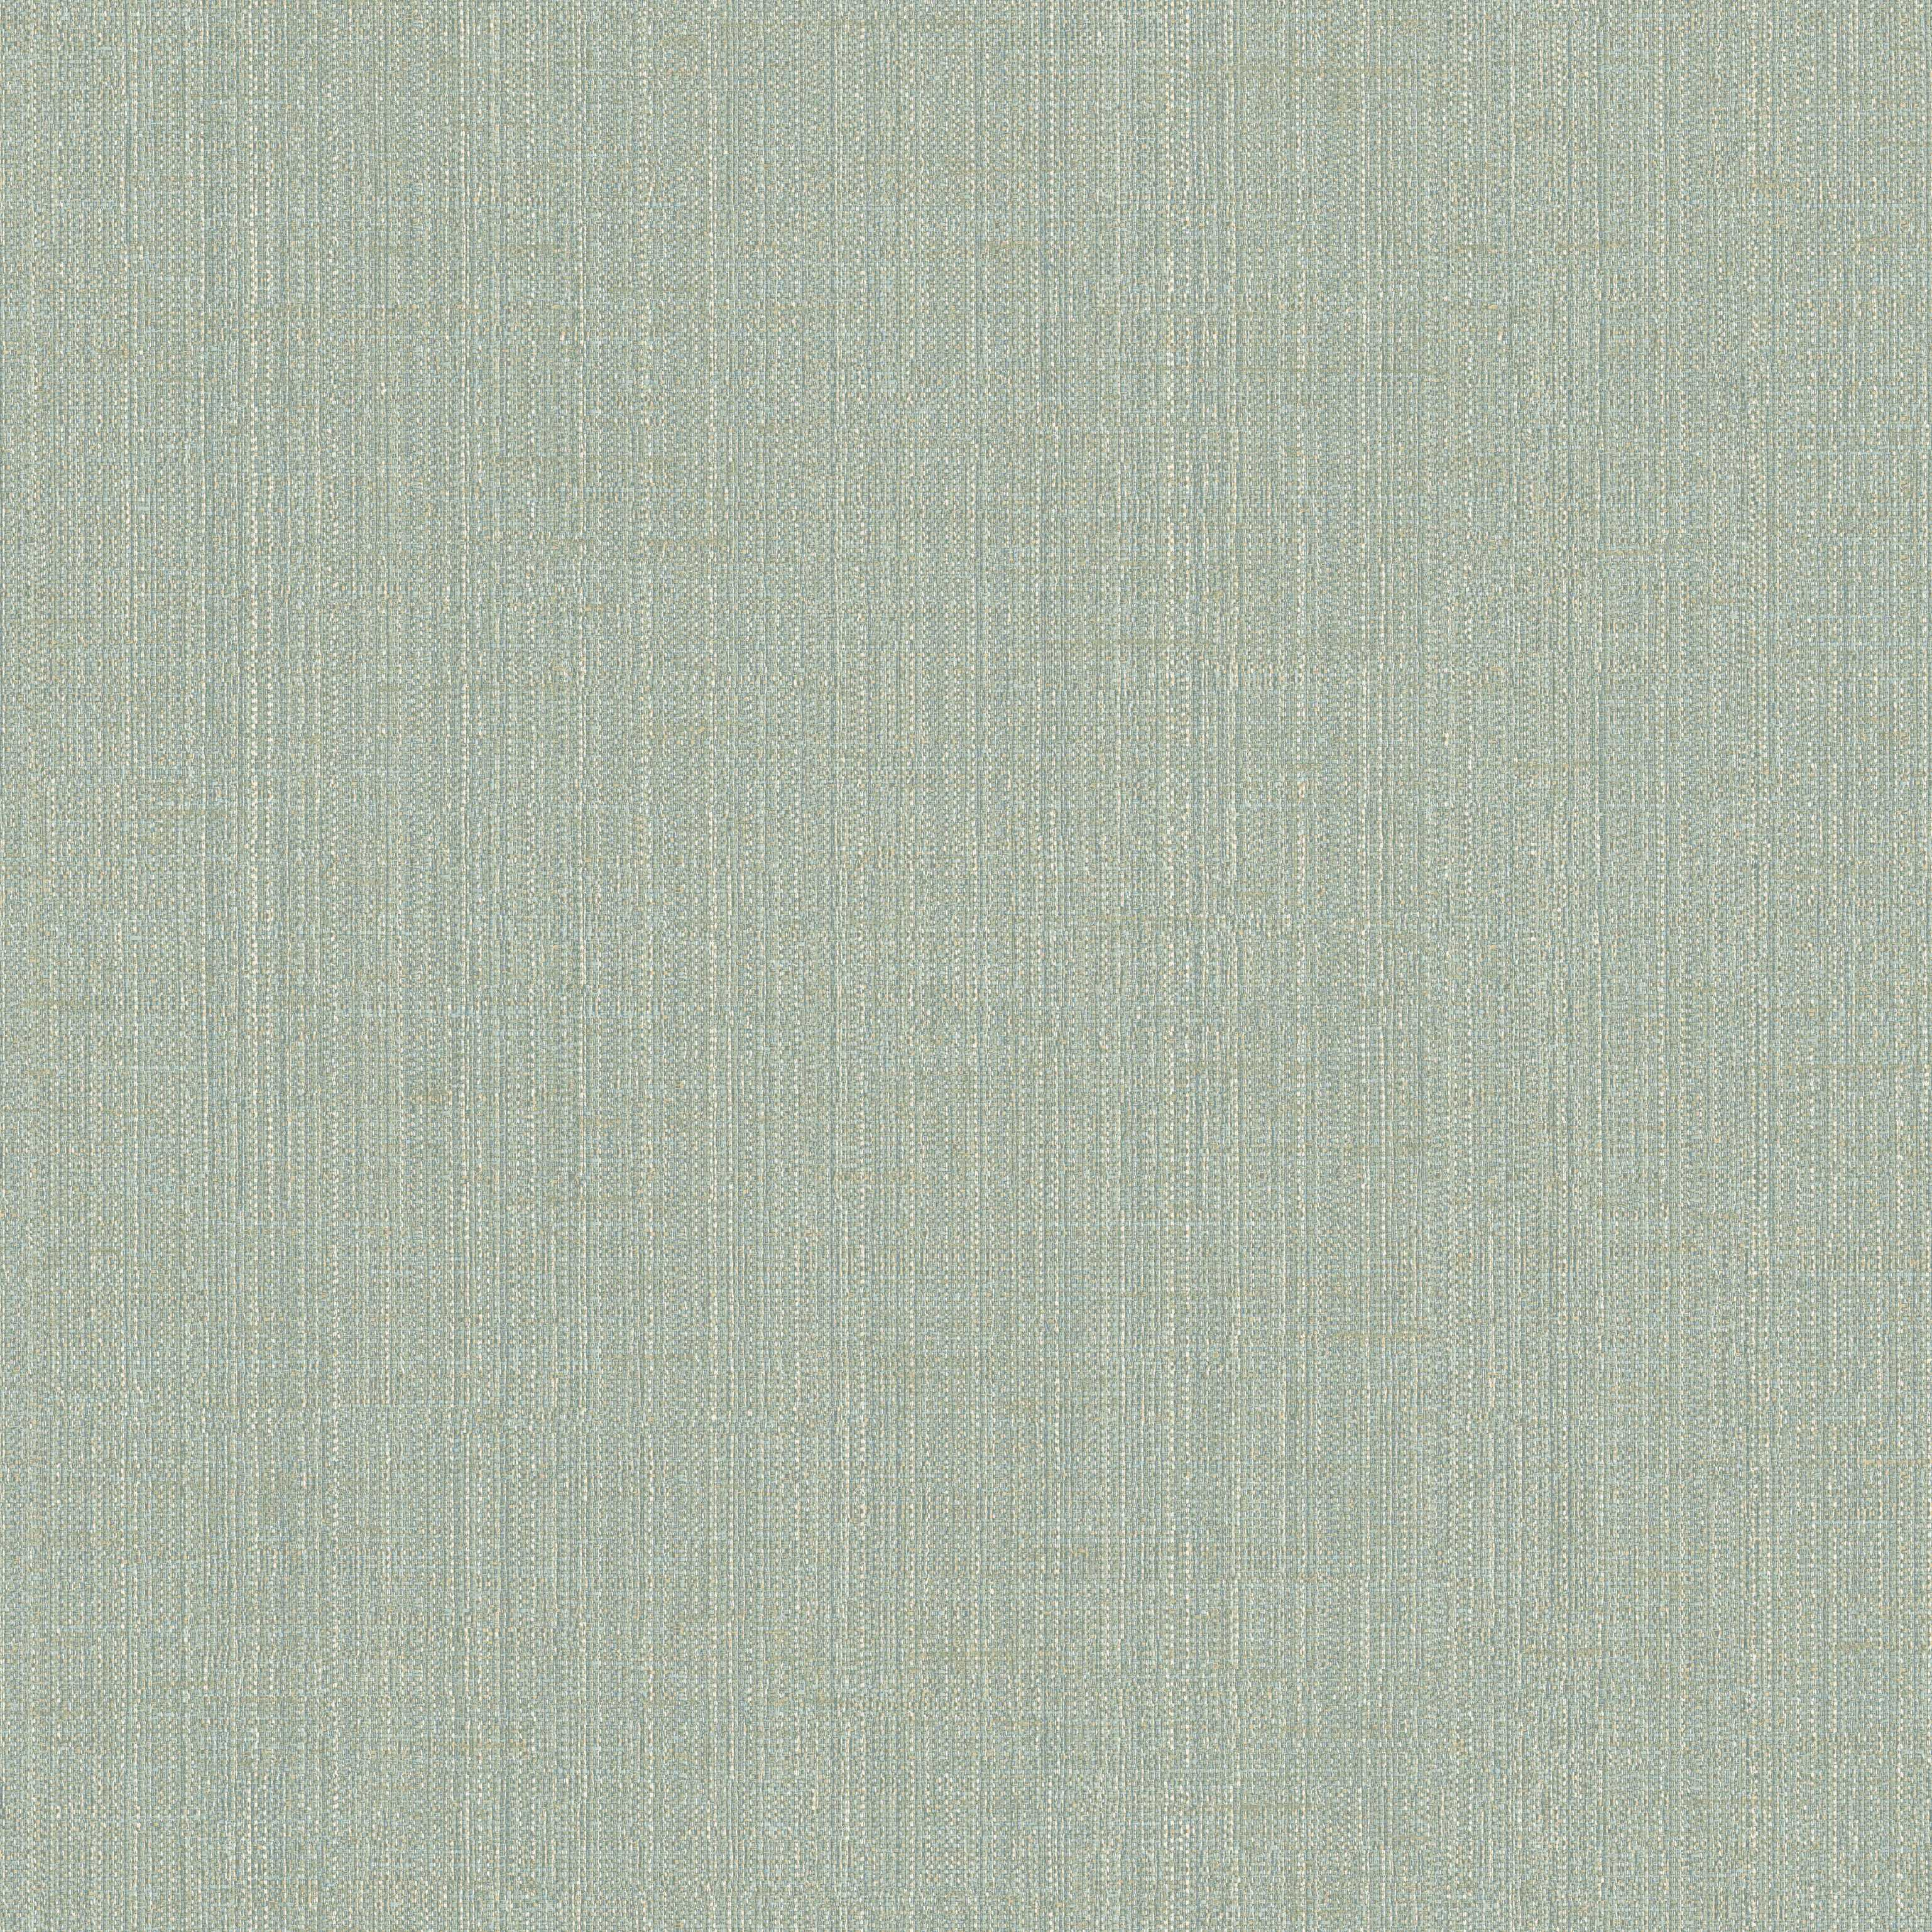 Chesapeake By Brewster Htm49508 Outdoors Bennet Blue Faux Linen Fabric Wallpaper The Savvy Decorator